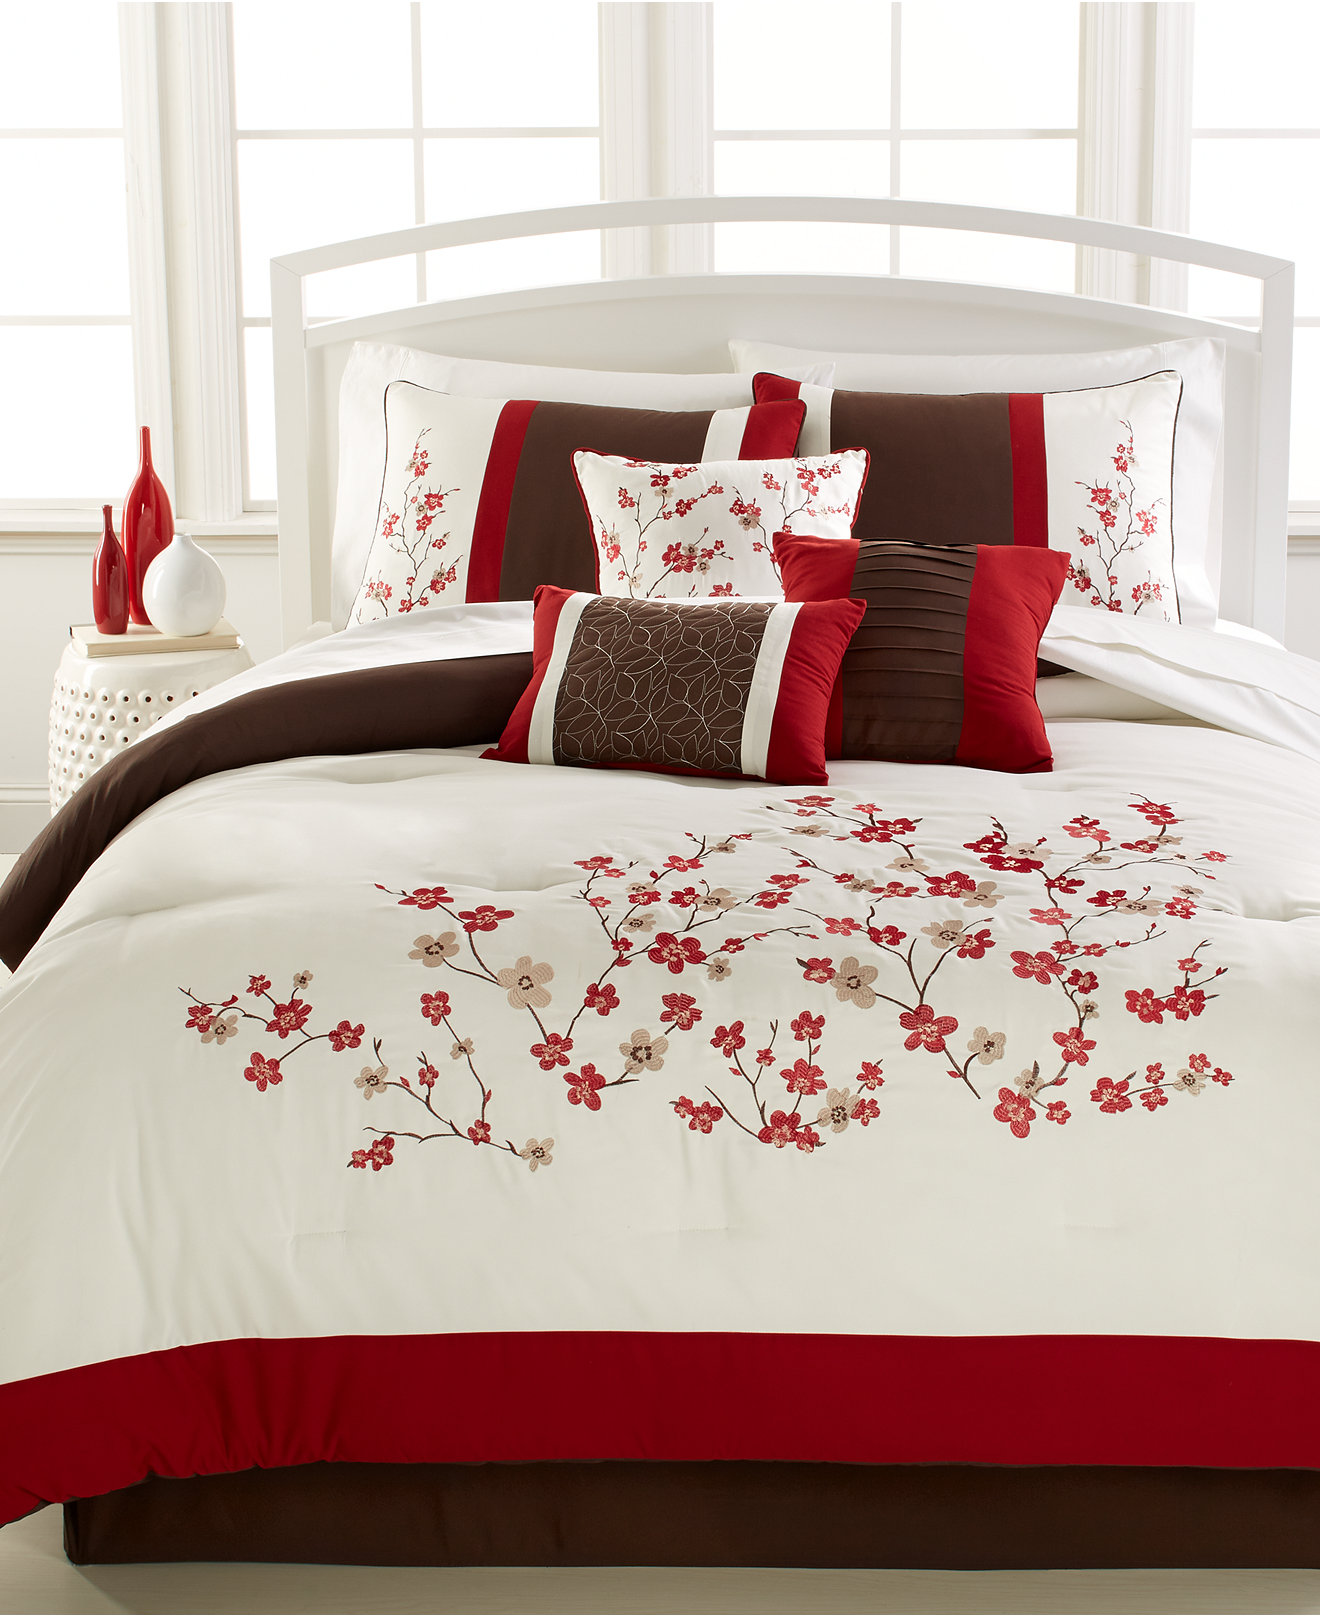 Tropical Bedding Sets Queen | Queen Bedding Sets | Target Bedspreads